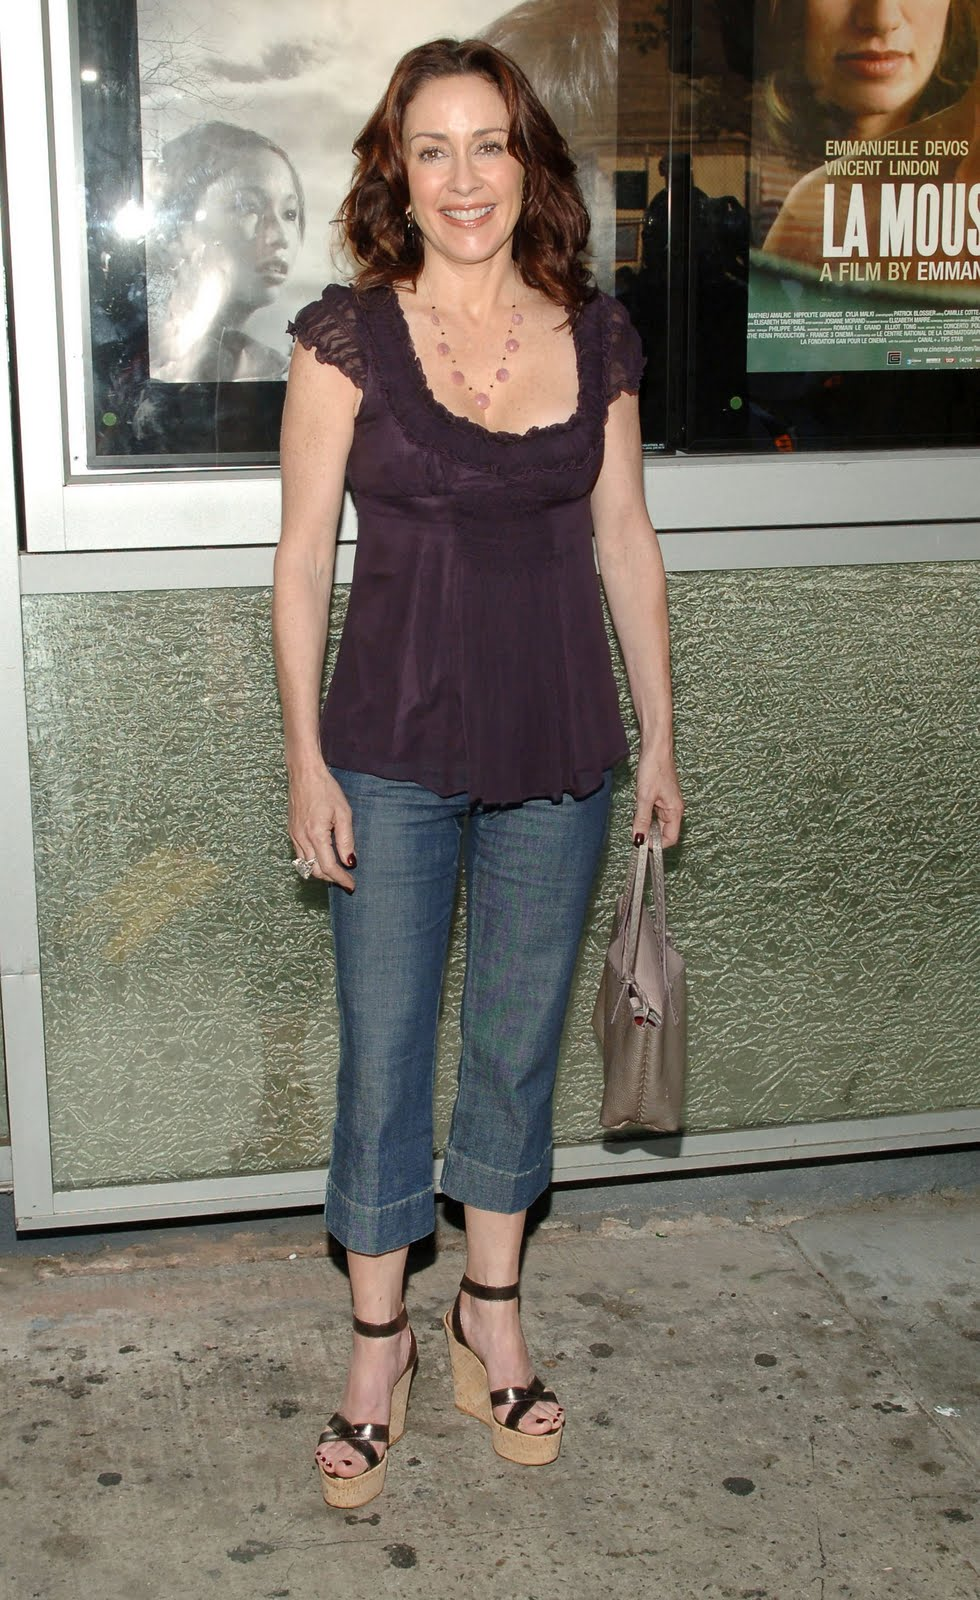 patricia heaton feet images